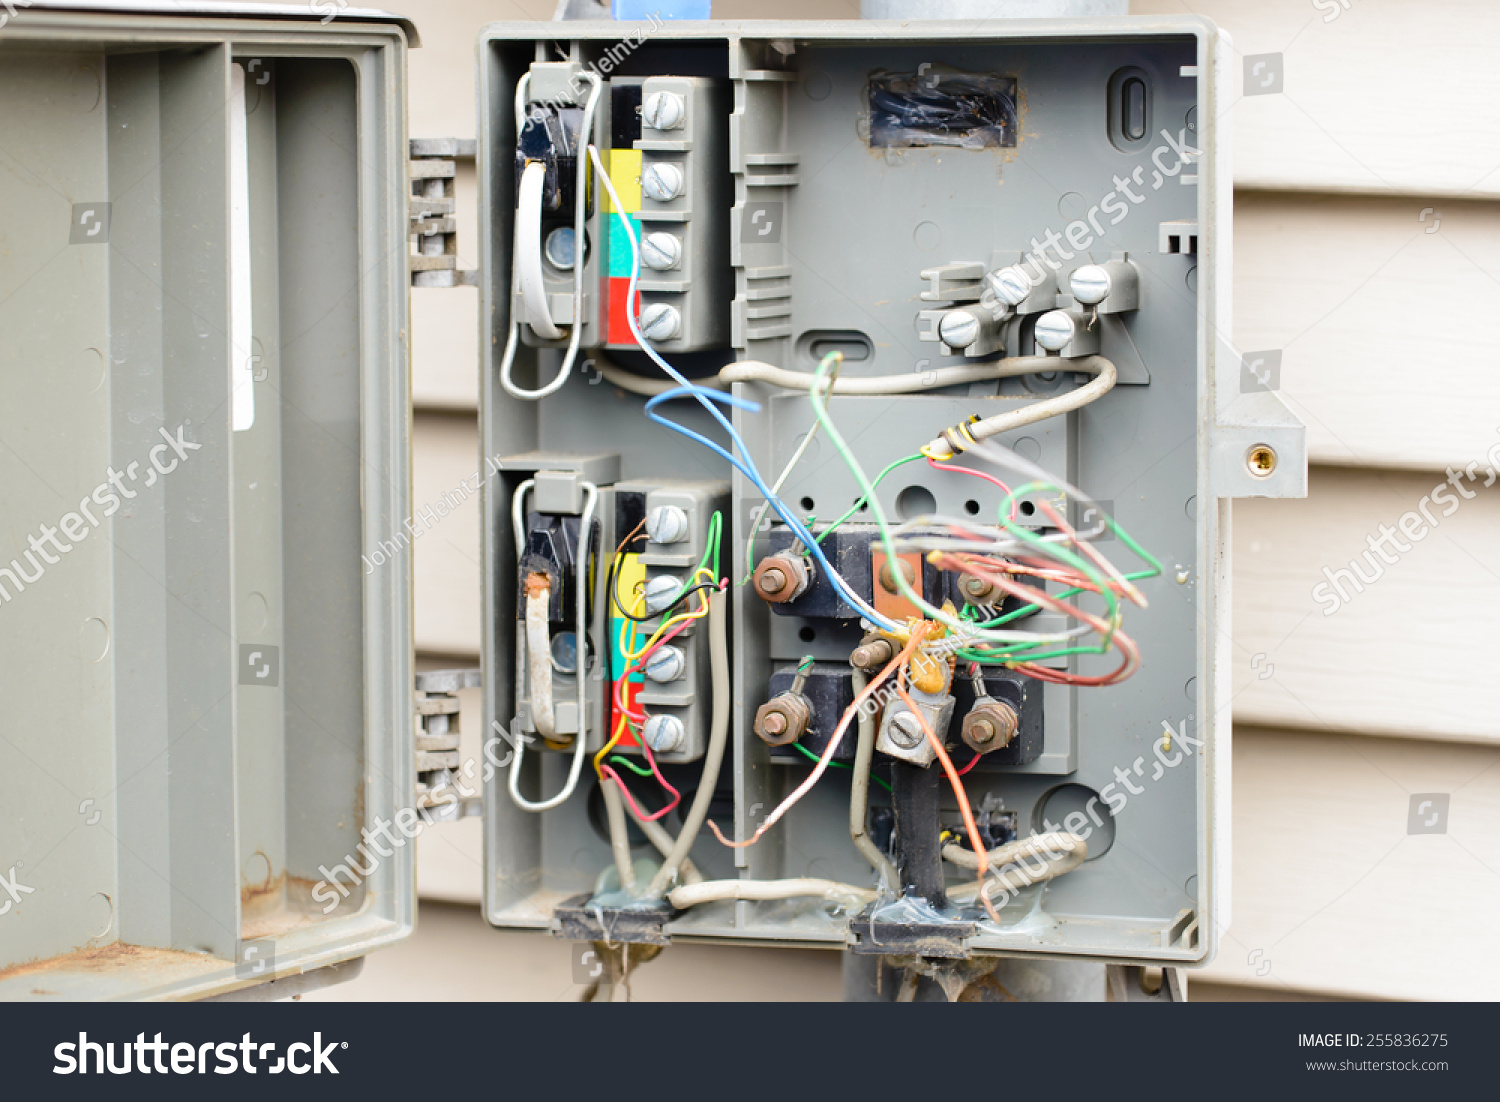 Exposed Outdoor Telephone Wire Wiring Box Interface Open Wires Stock Photo Edit Now 1500x1102